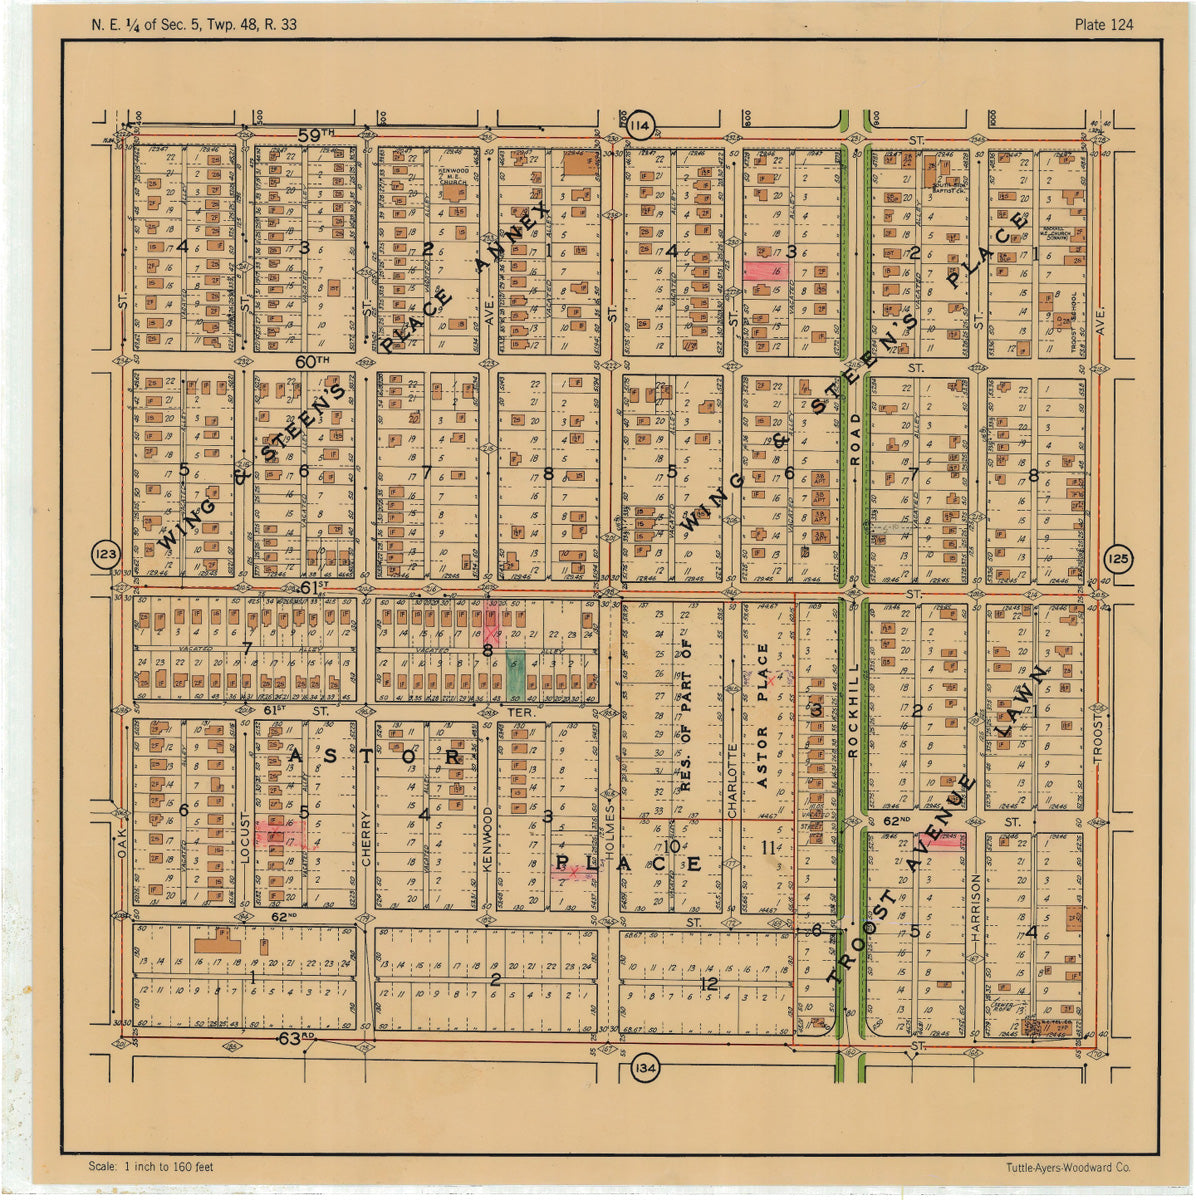 Kansas City 1925 Neighborhood Map - Plate #124 59th-63rd Oak-Troost